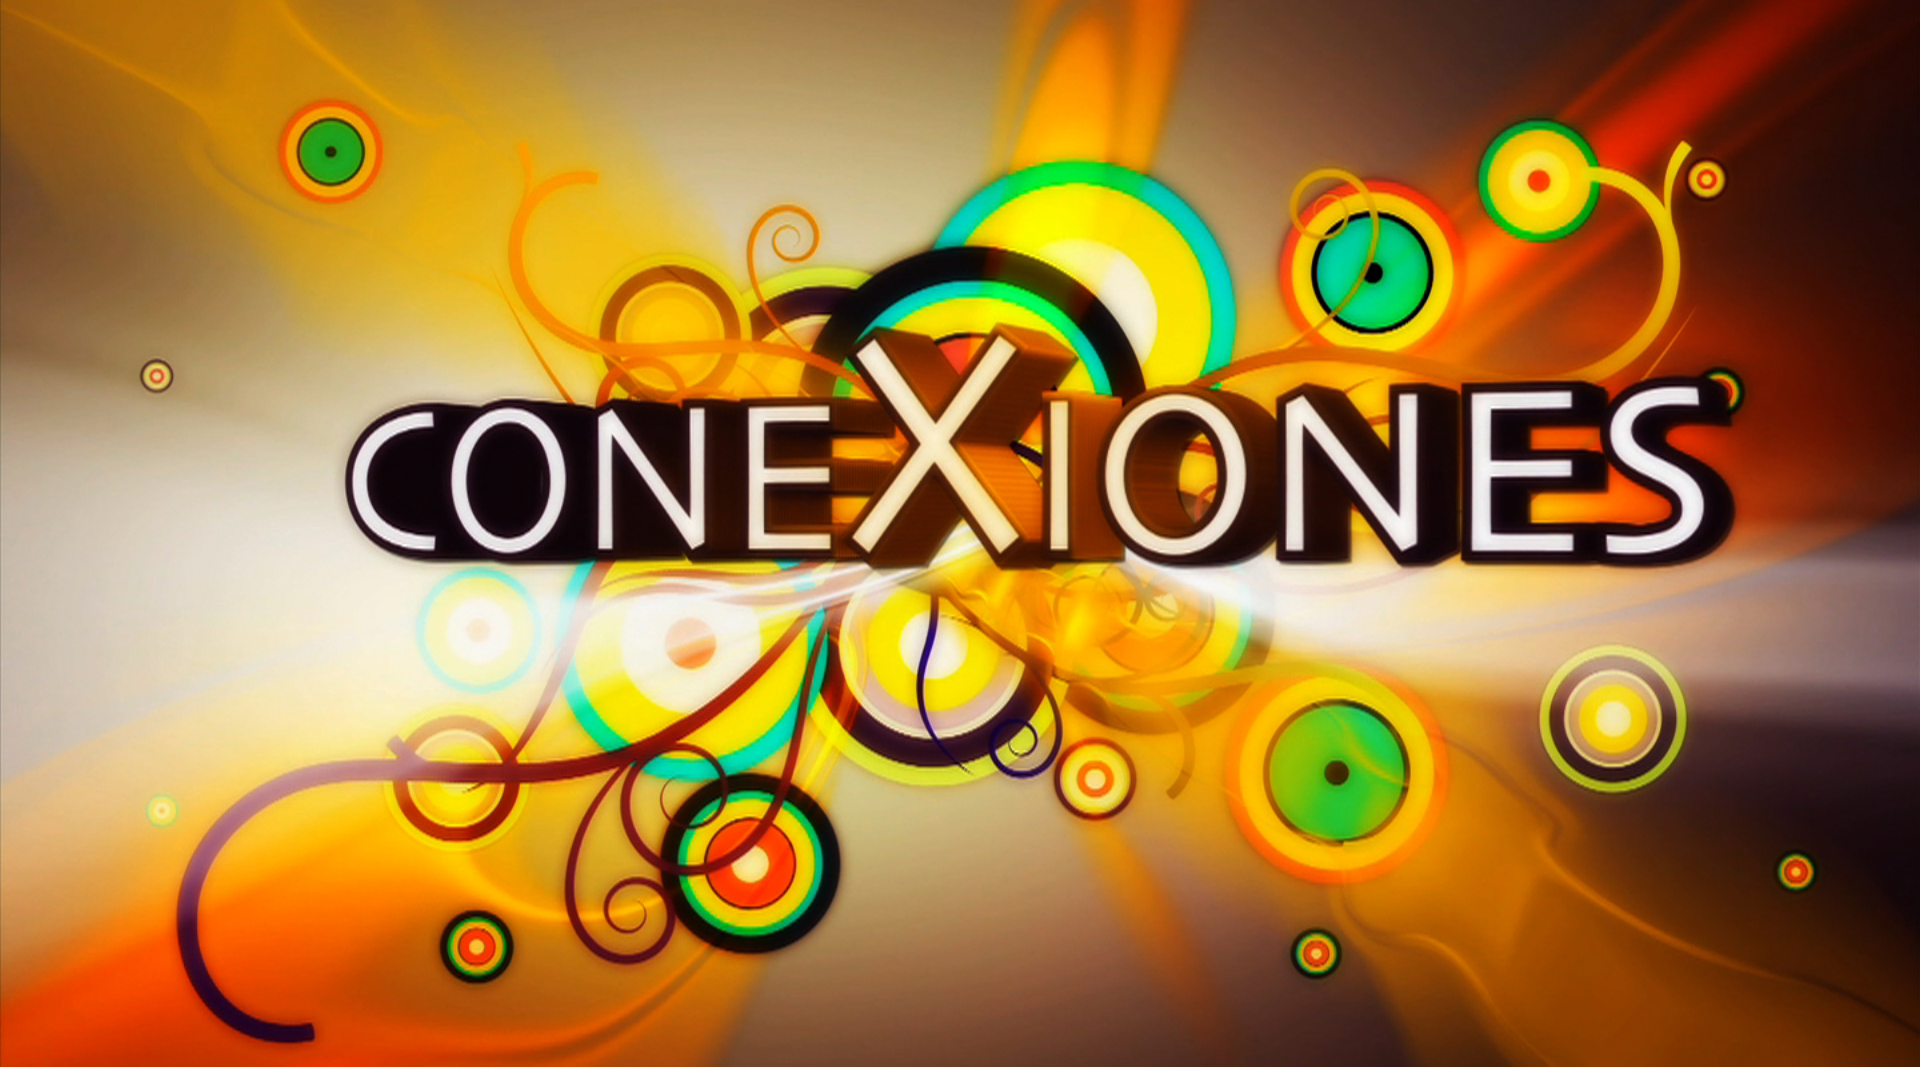 The Awesome Foundation : Conexiones